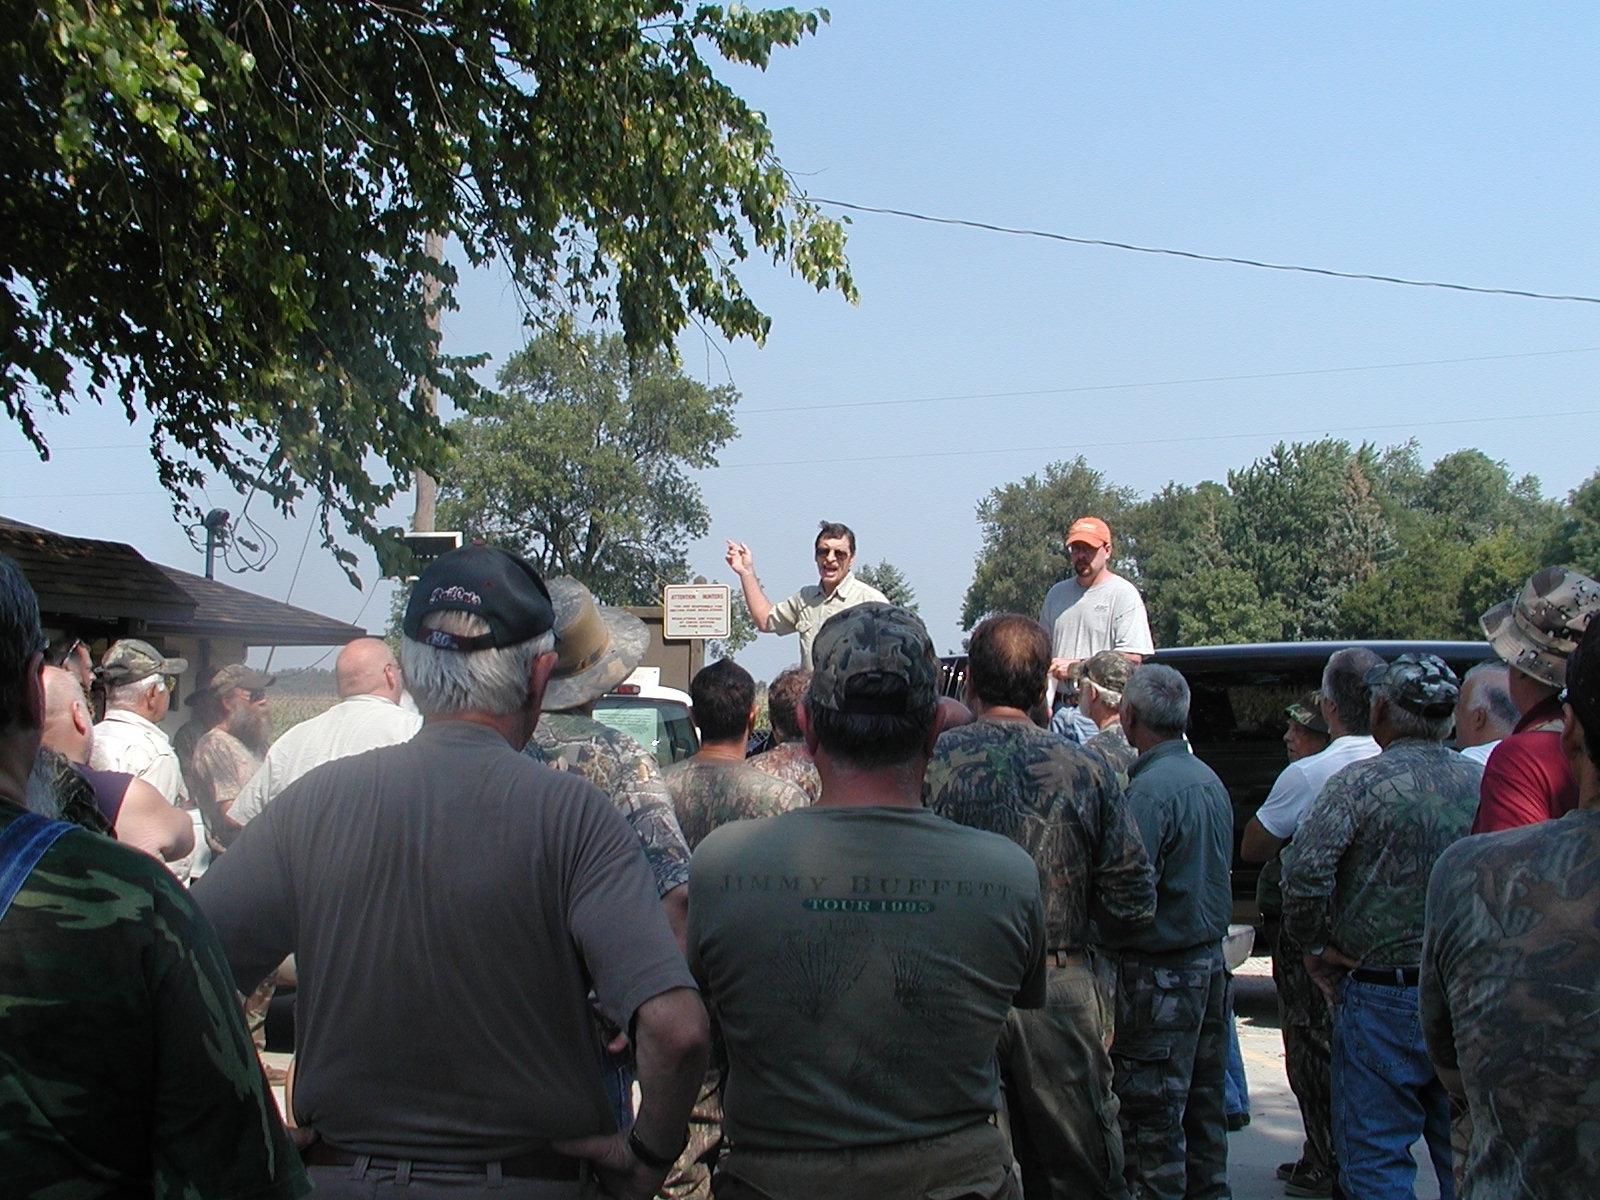 File photo of retired site superintendent Frank Snow conducting the draw for opening day of dove hunting at Iroquois County State Wildlife Area. Credit: Dale Bowman